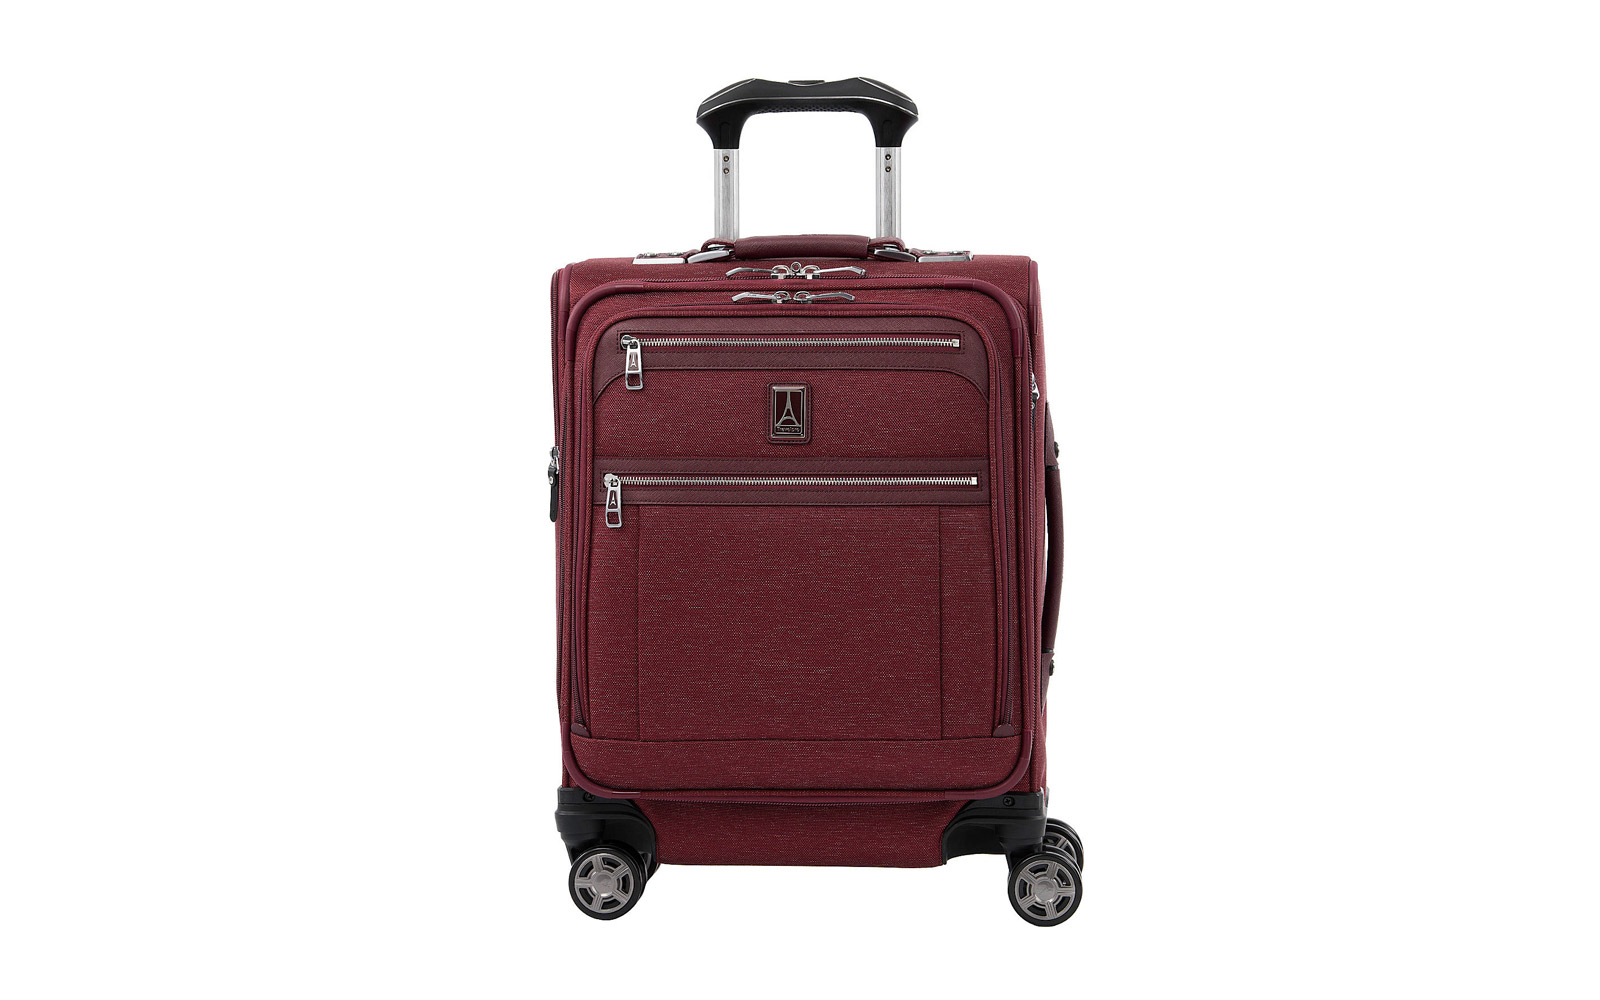 travelpro carry on spinner luggage